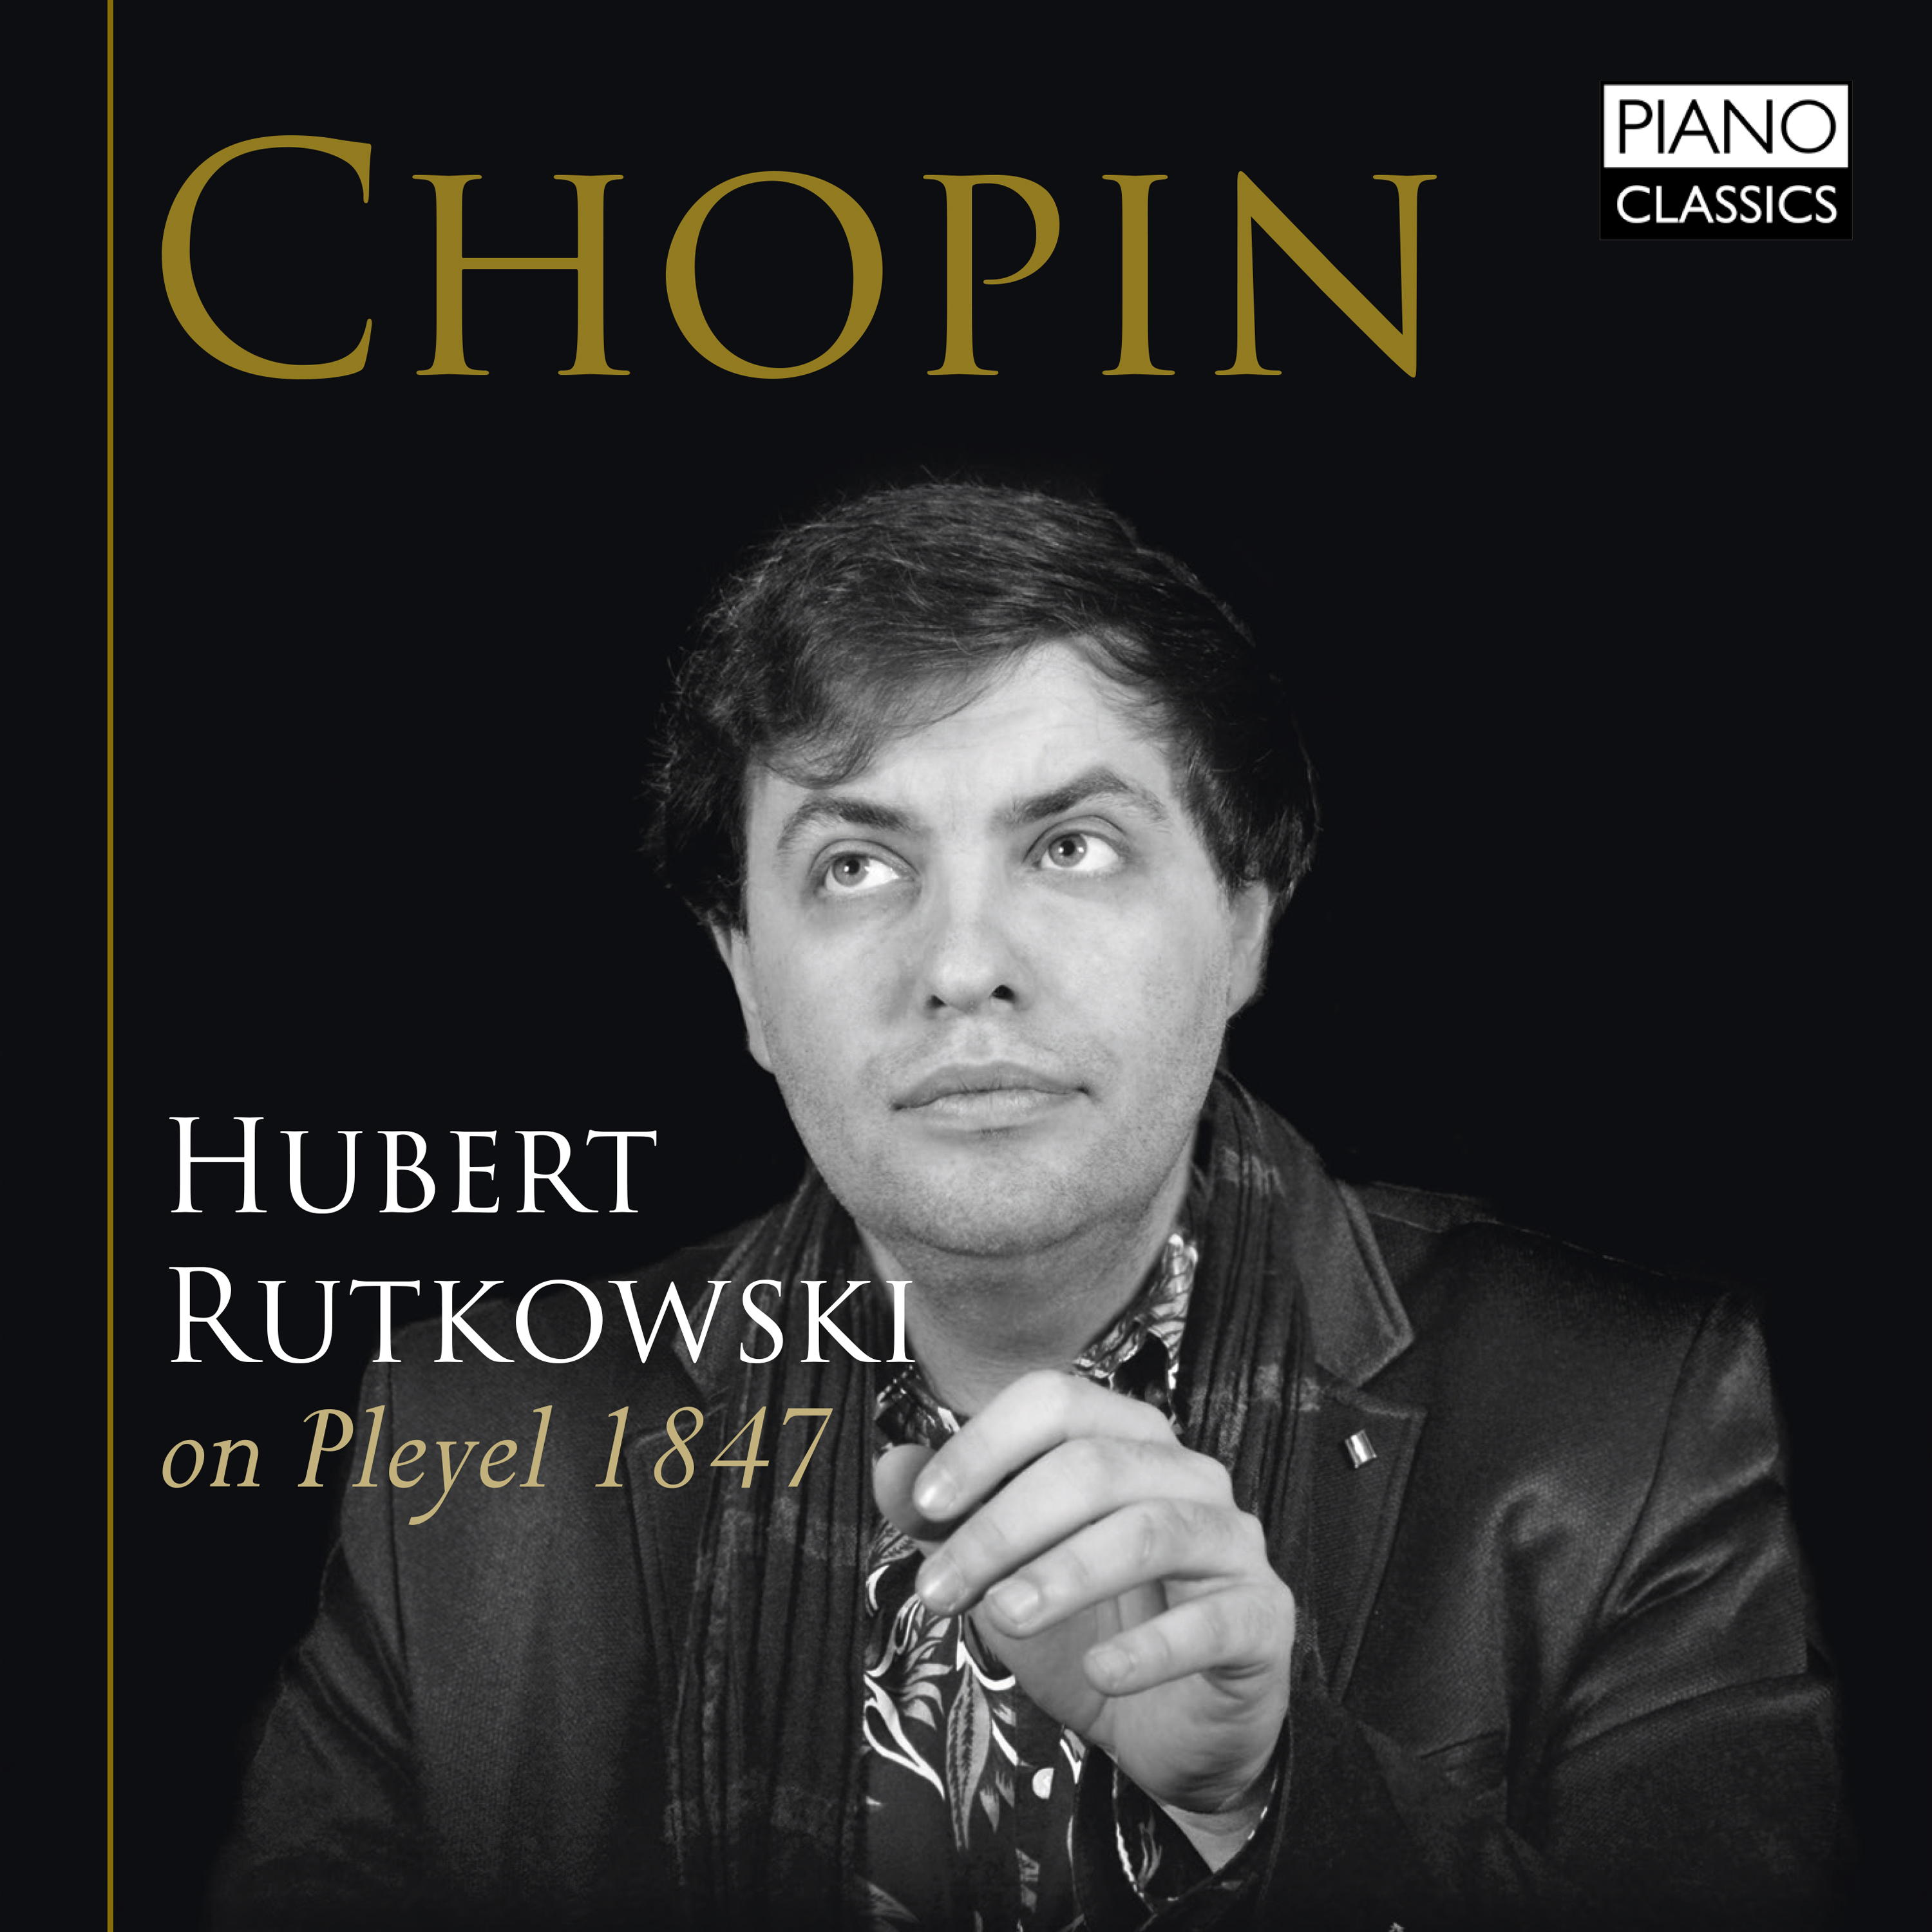 Chopin: Hubert Rutkowski on Pleyel